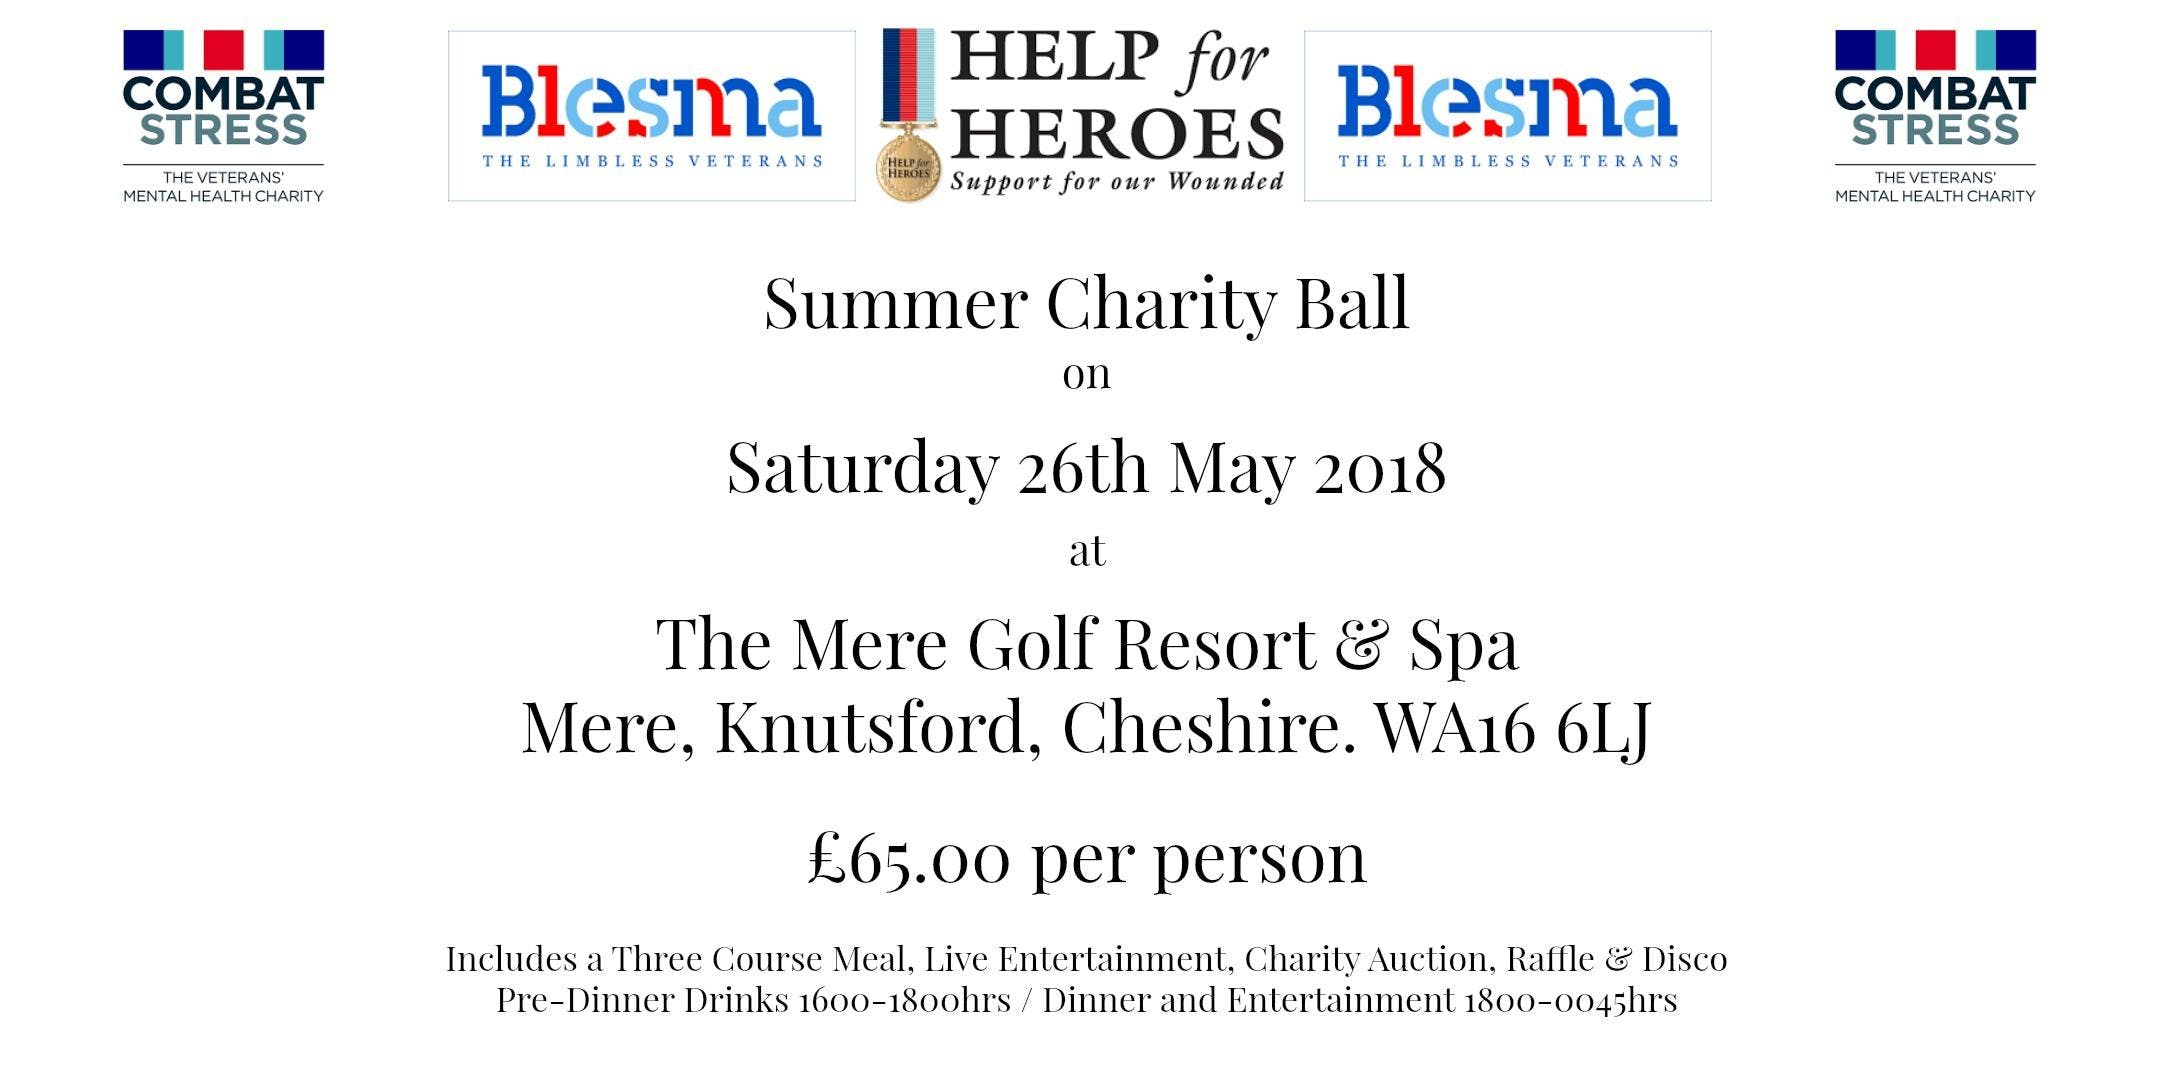 Summer Charity Ball in support of Combat Stre